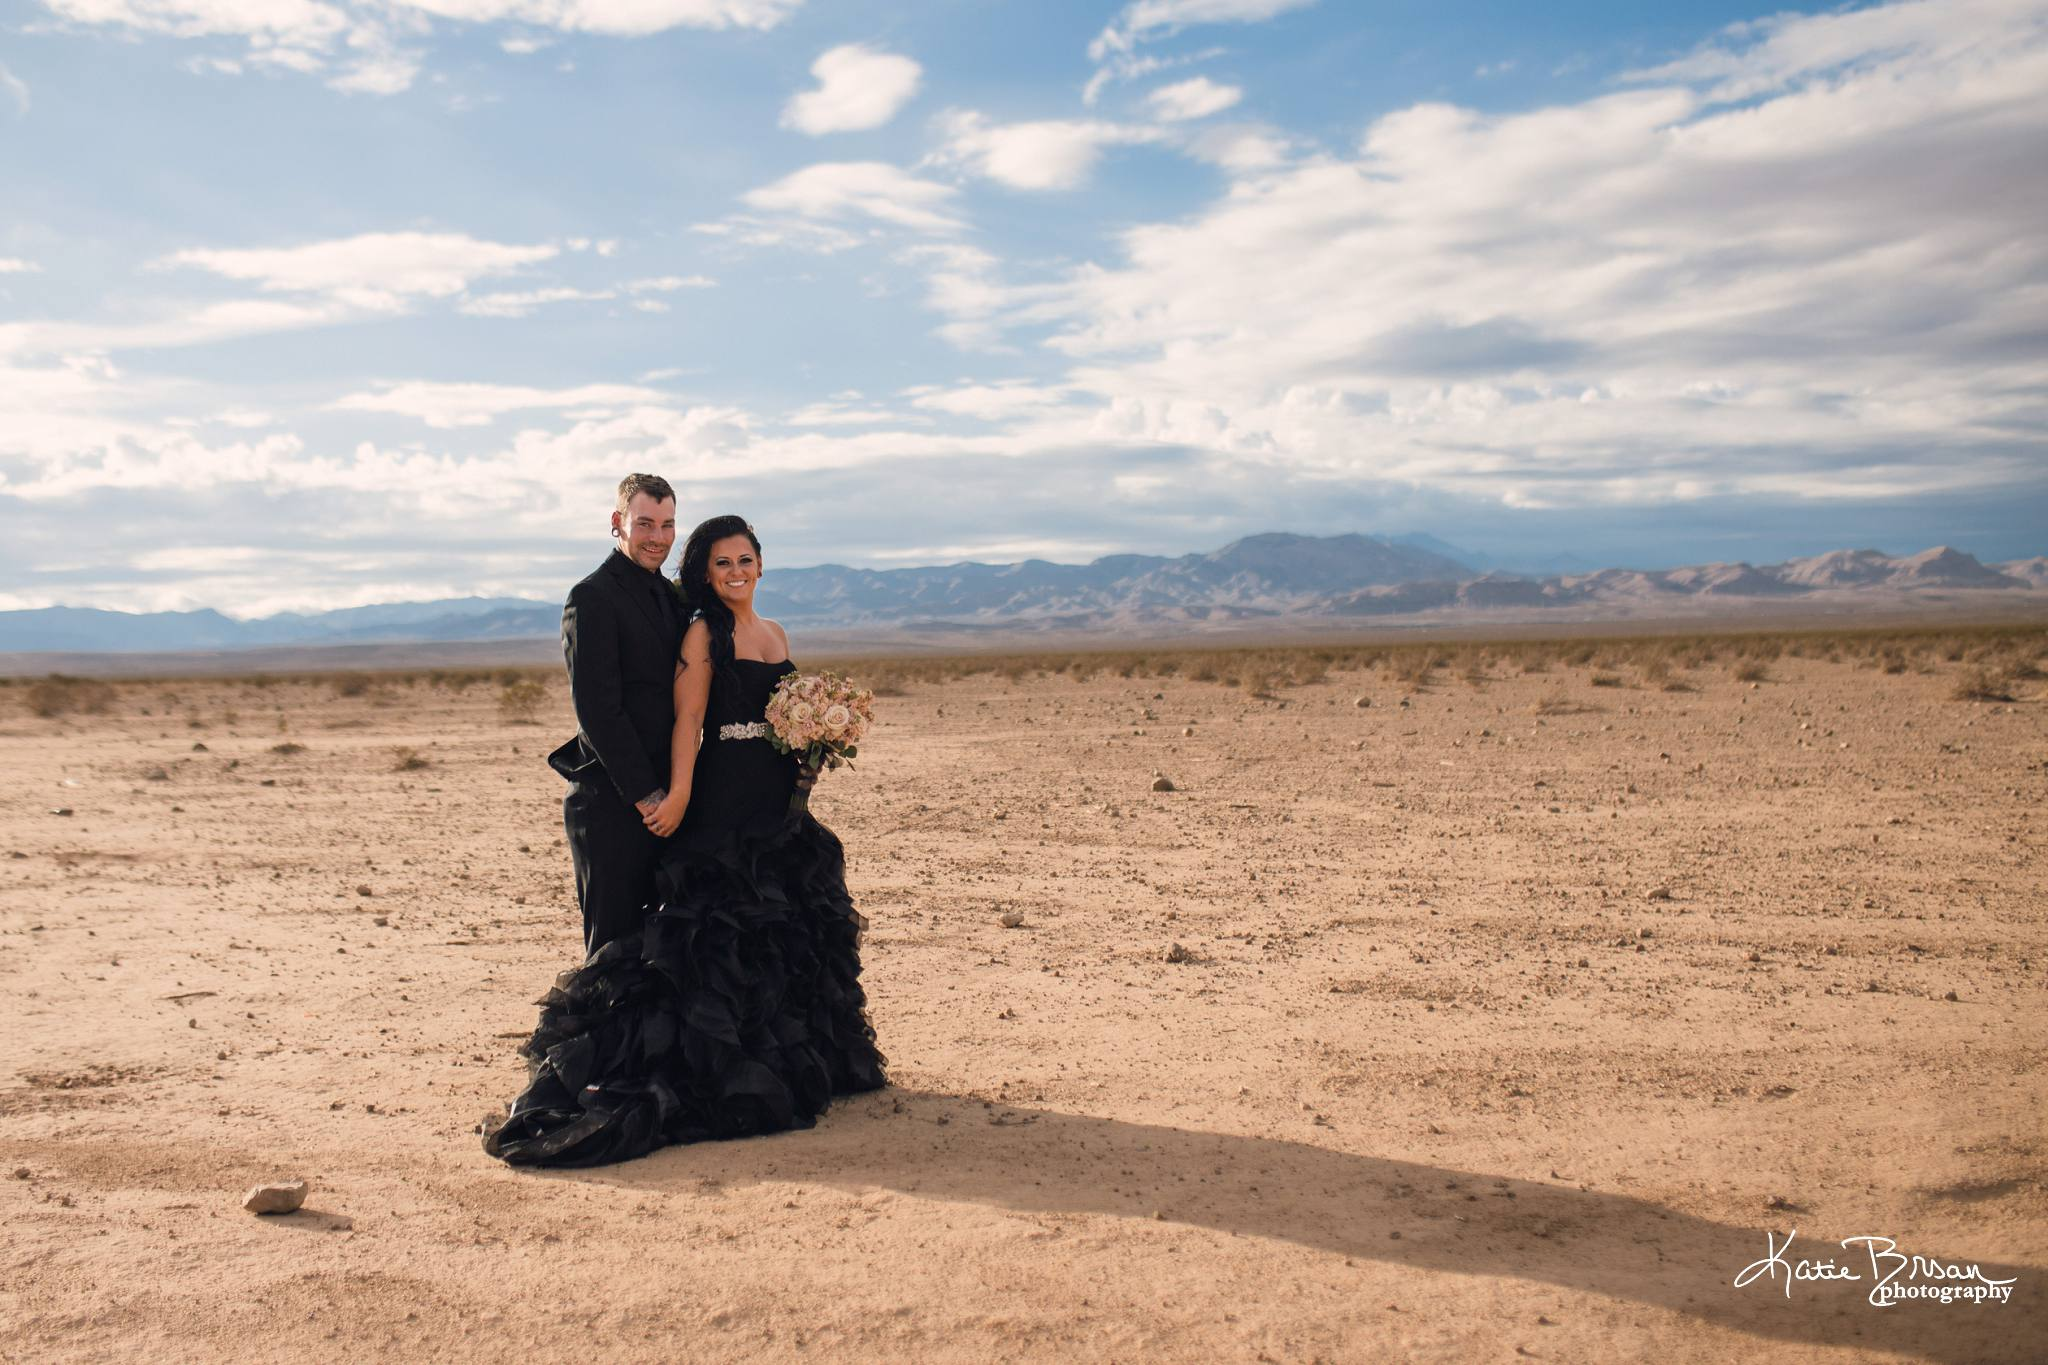 LasVegas_Wedding_BlackWeddingDress_0010.jpg